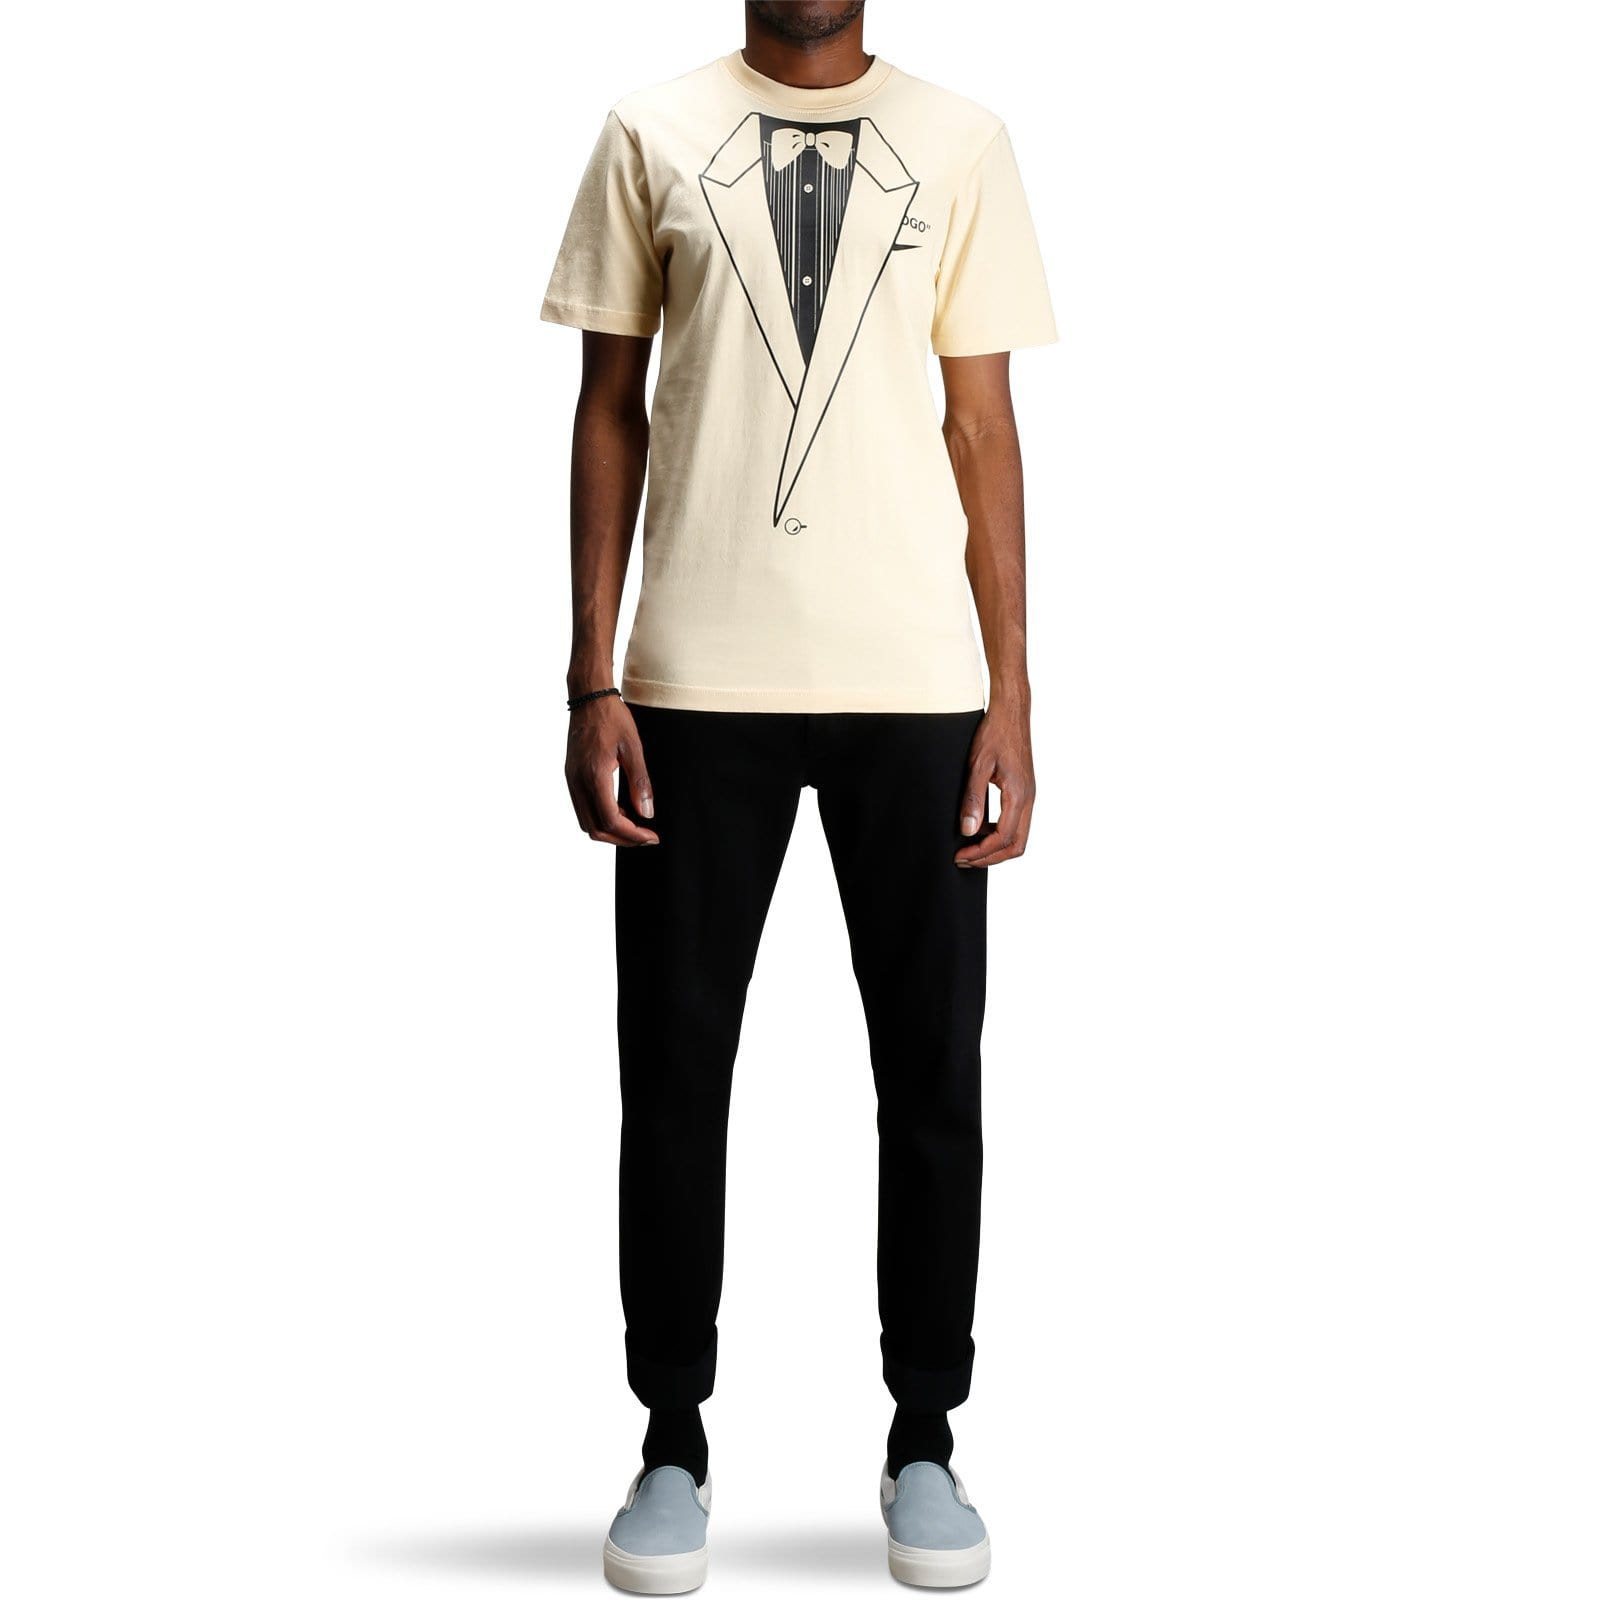 a1a83170 Nike Off White Nrg A6 T Shirt - gaurani.almightywind.info